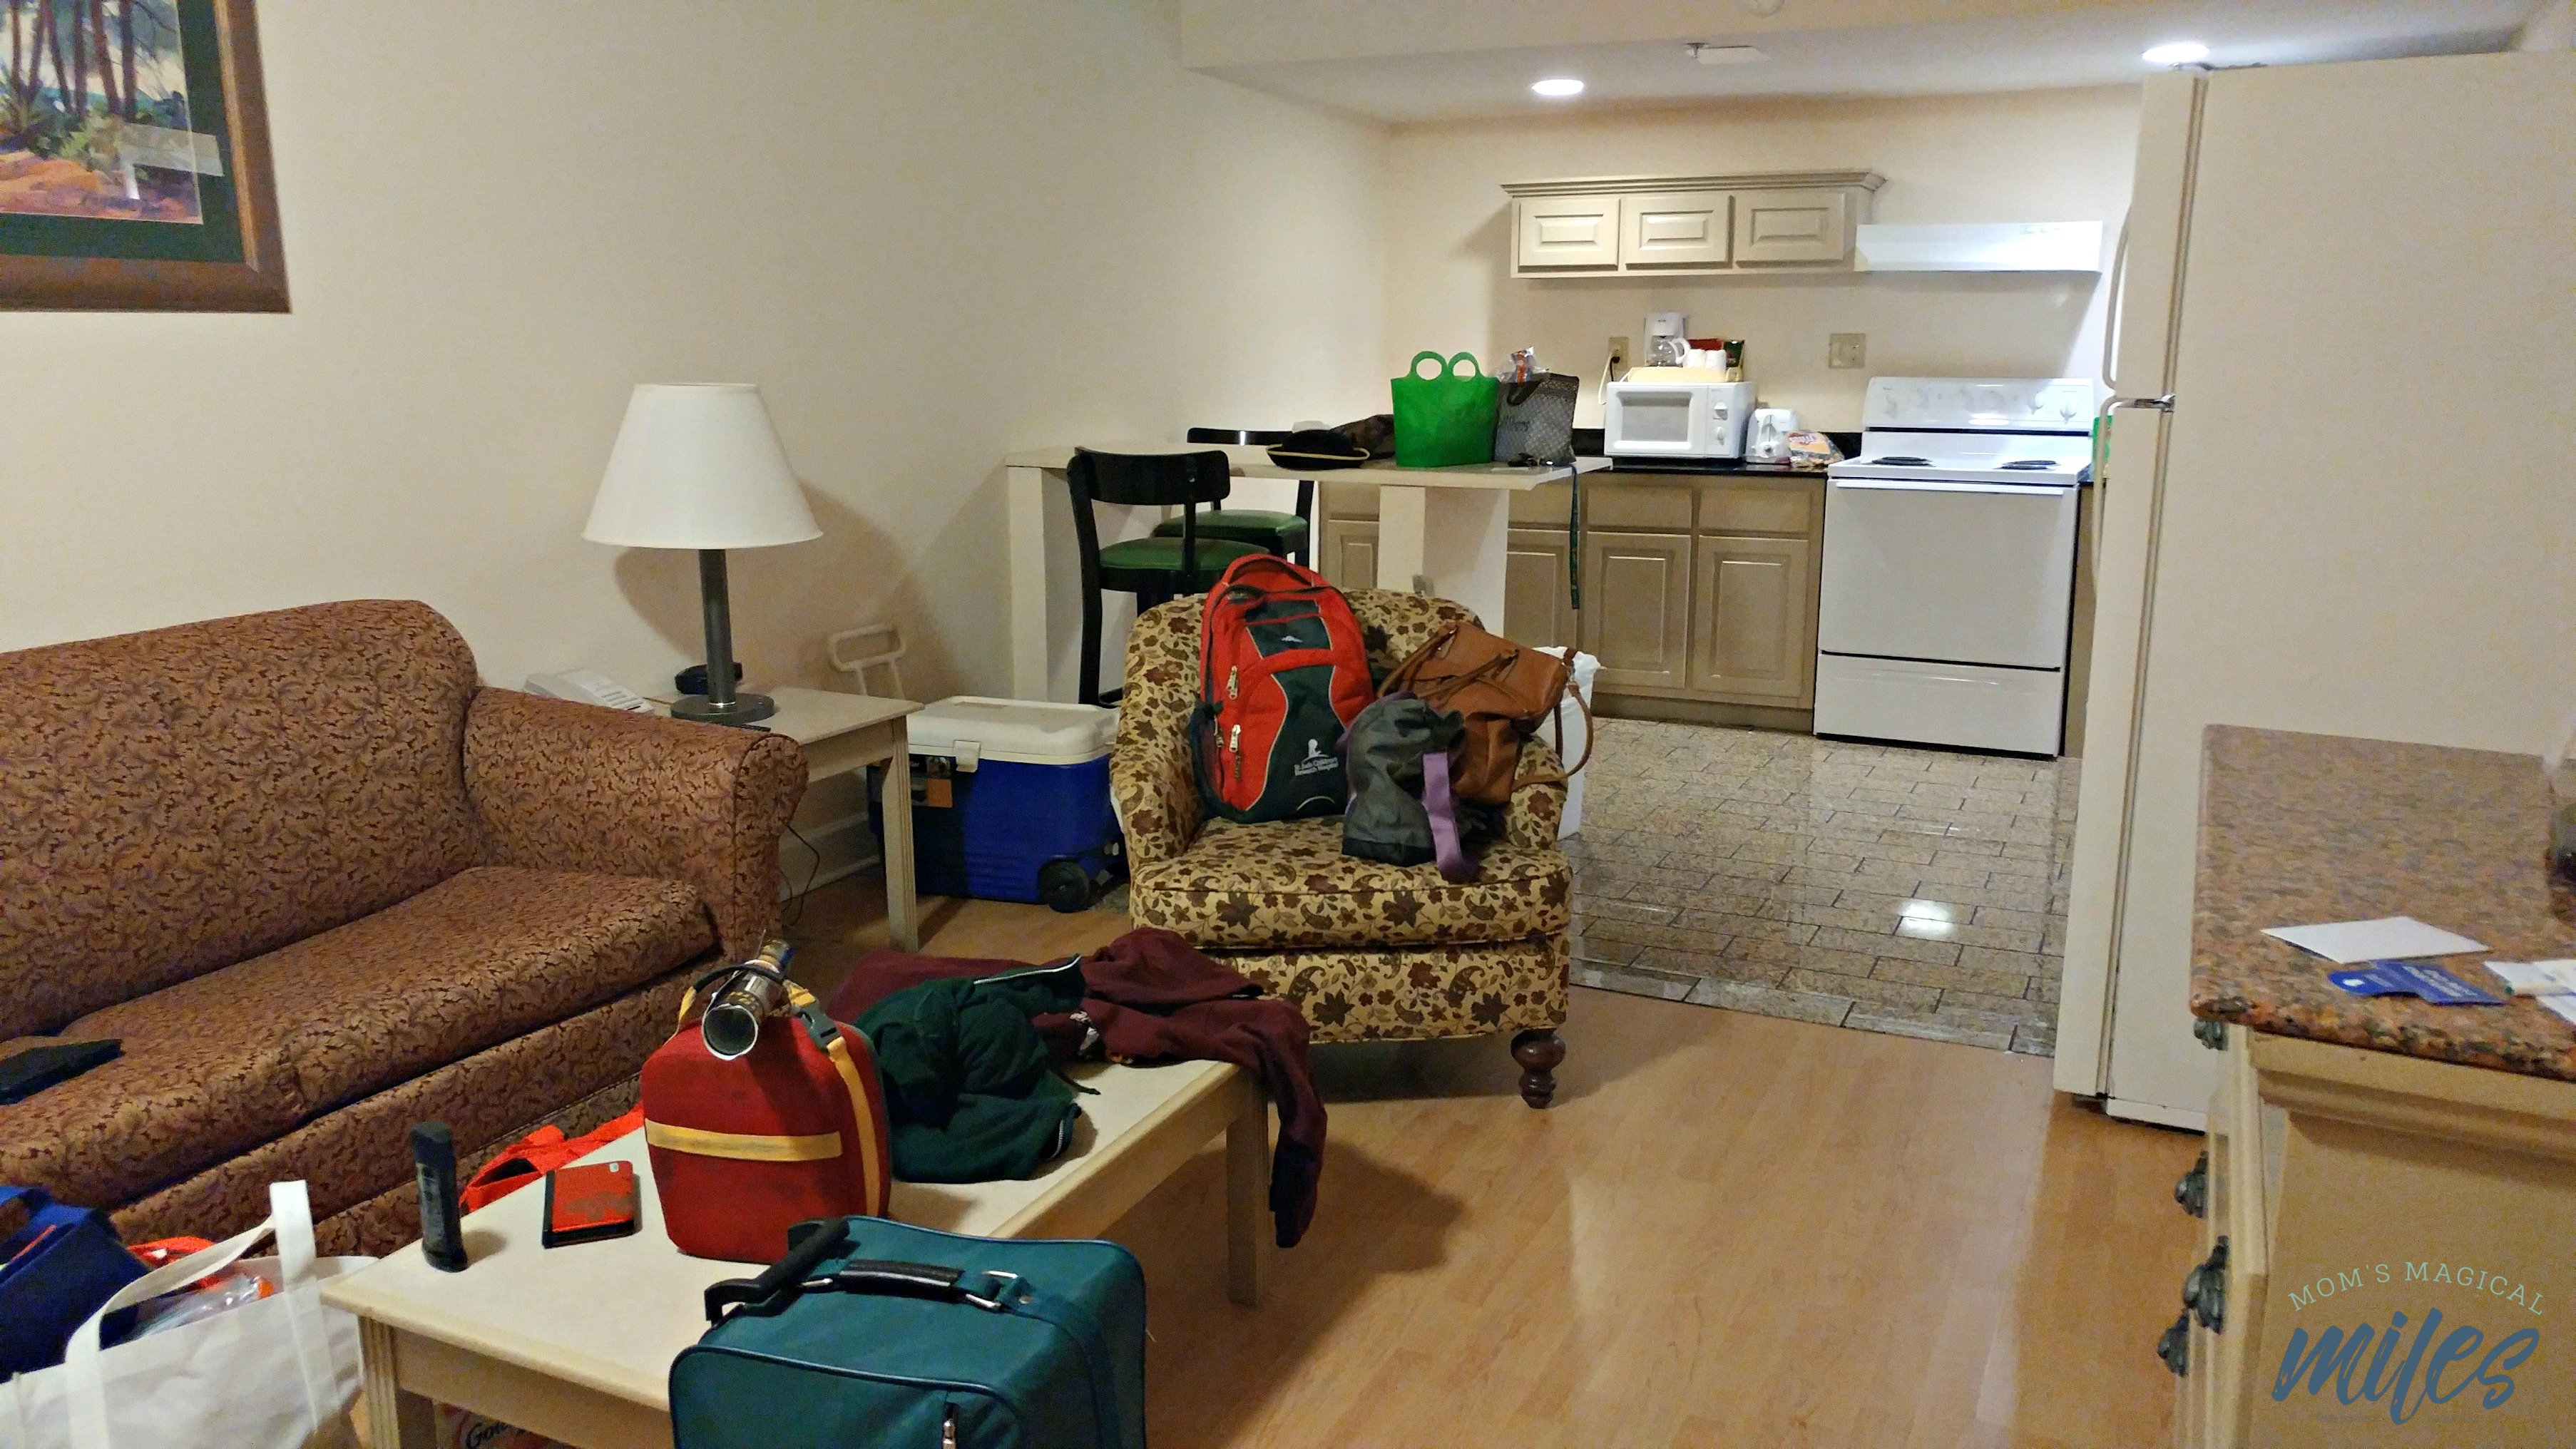 The Cumberland Inn at St. Mary's, GA was perfect for our family's needs.